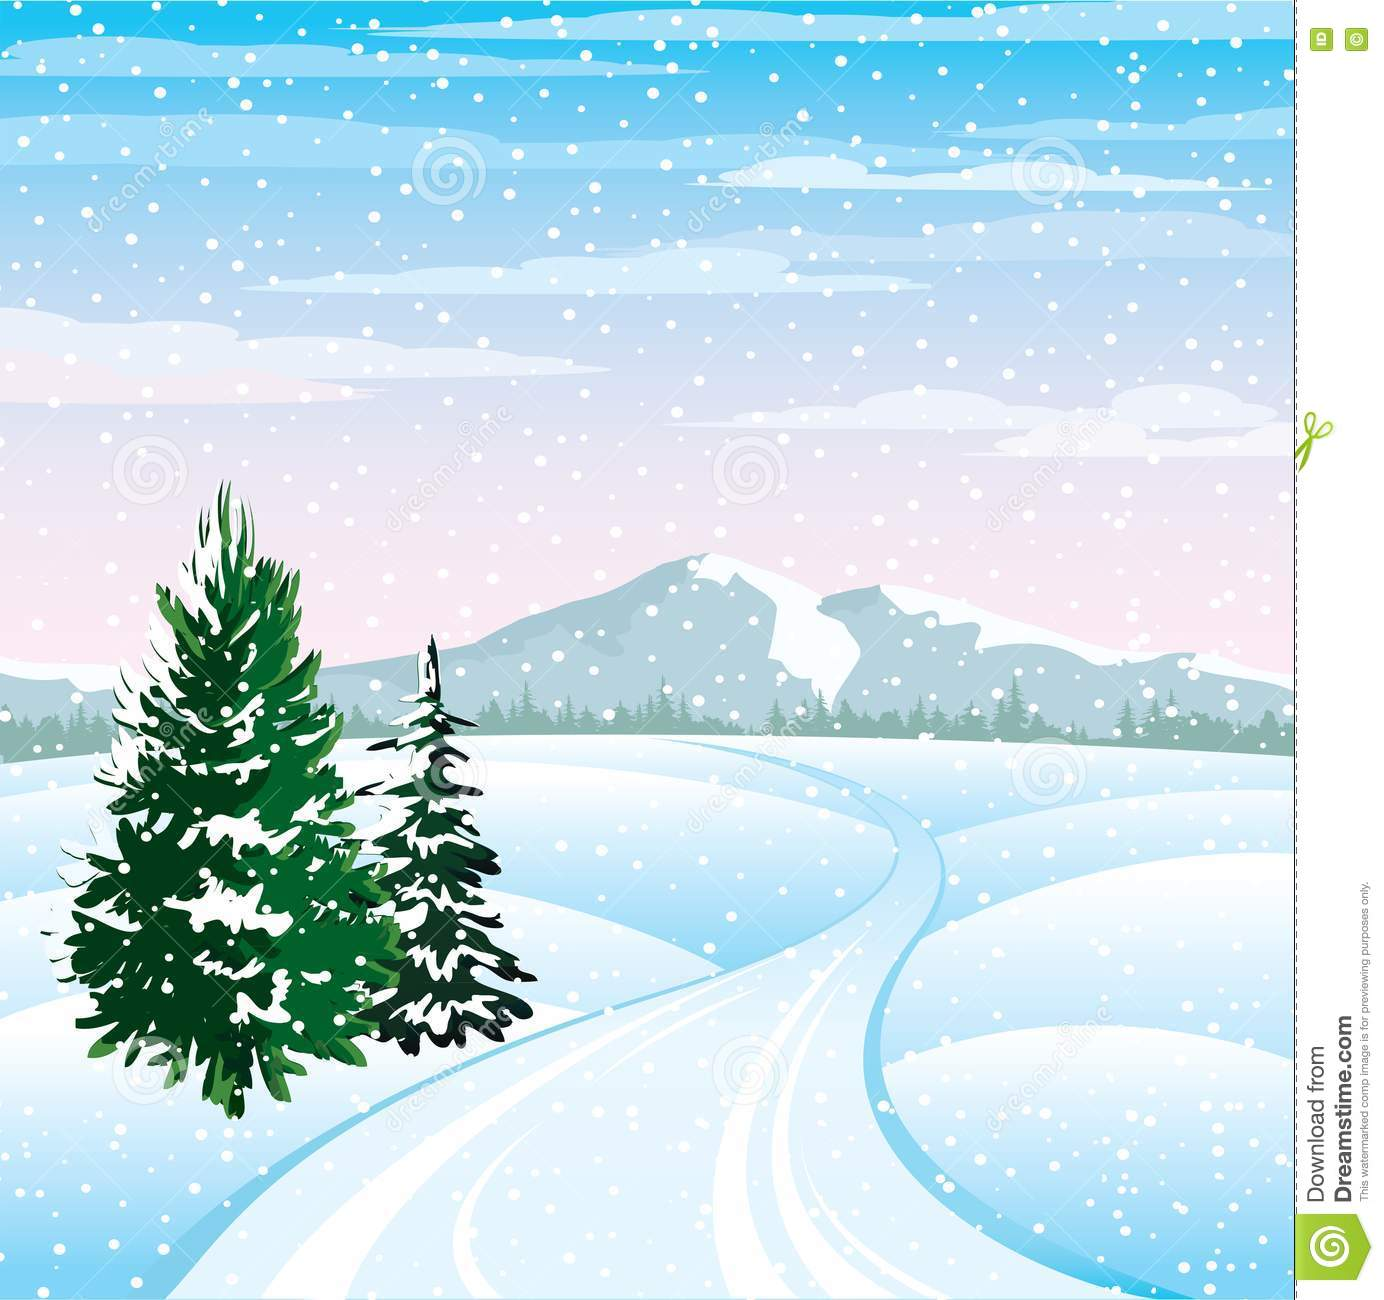 Winterlandschaft stock abbildung illustration von - Winterlandschaft dekoration ...